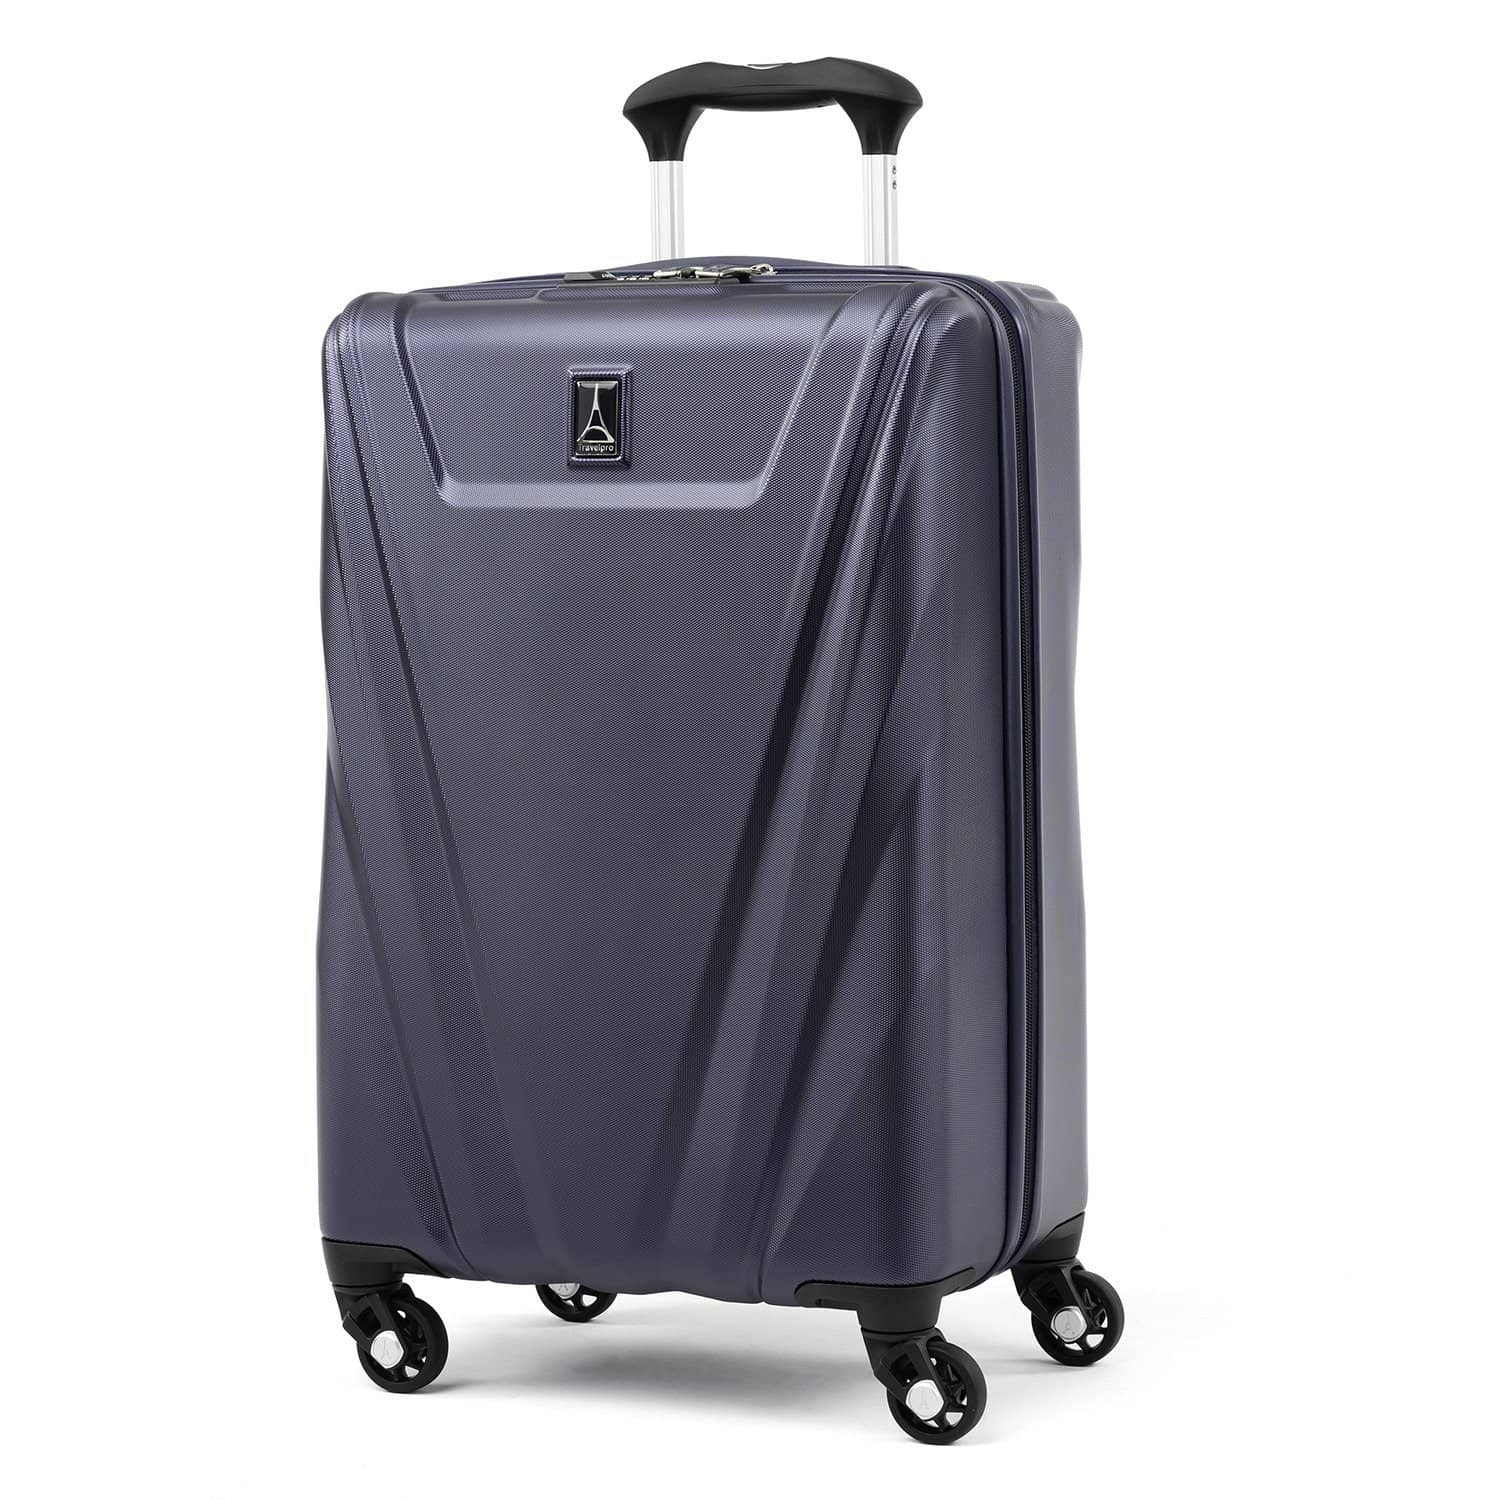 Travelpro Maxlite® 5 Carry-on Hardside Spinner MIDNIGHT BLUE